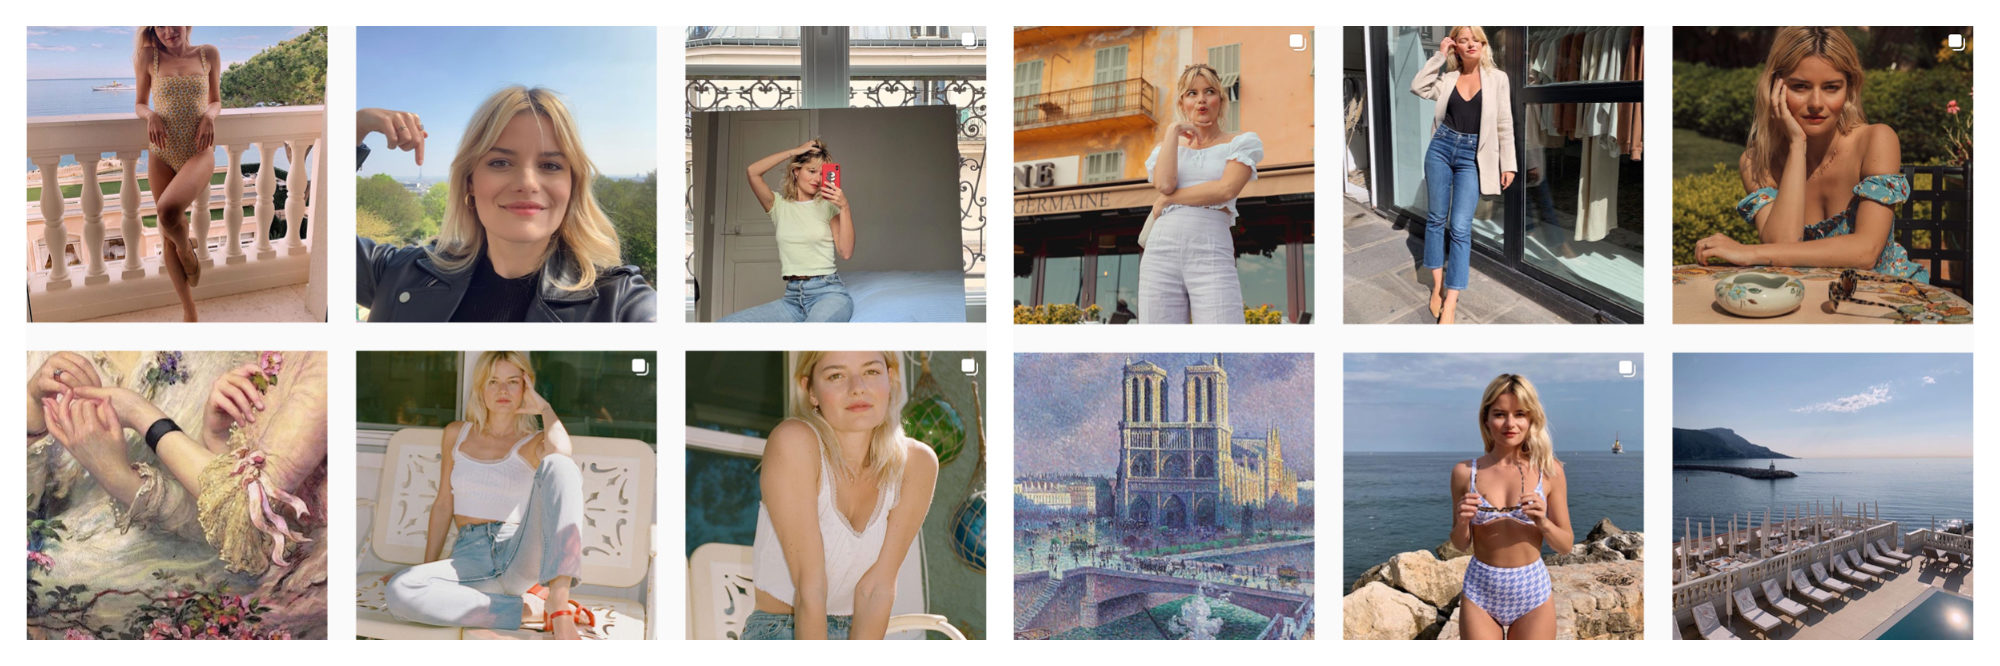 A selection of images of French Instagram fashion influencer Sabina Socol.